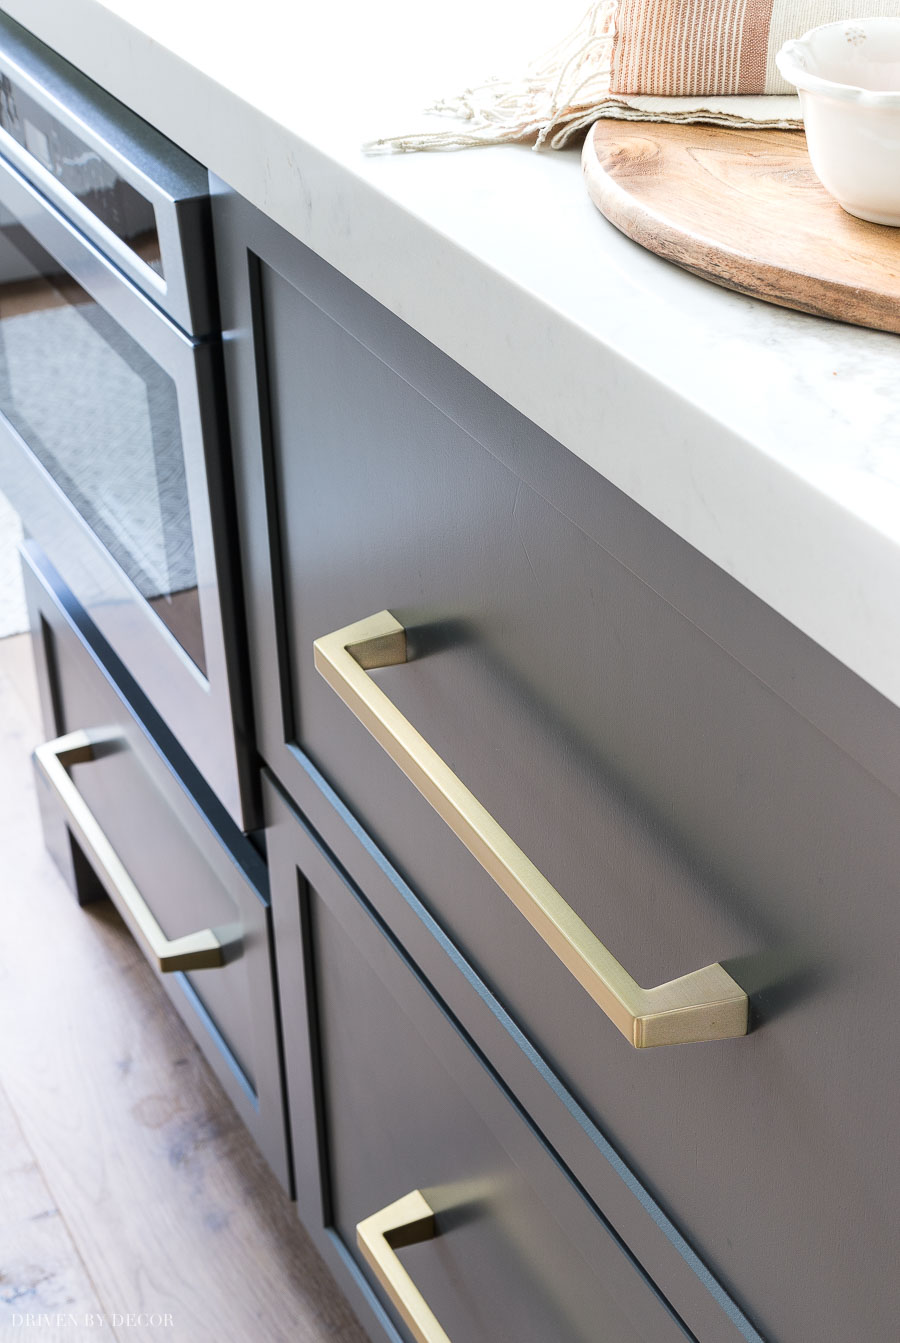 Beautiful soft brass pulls that look amazing on the gray cabinets (and on the white ones in this kitchen too!)